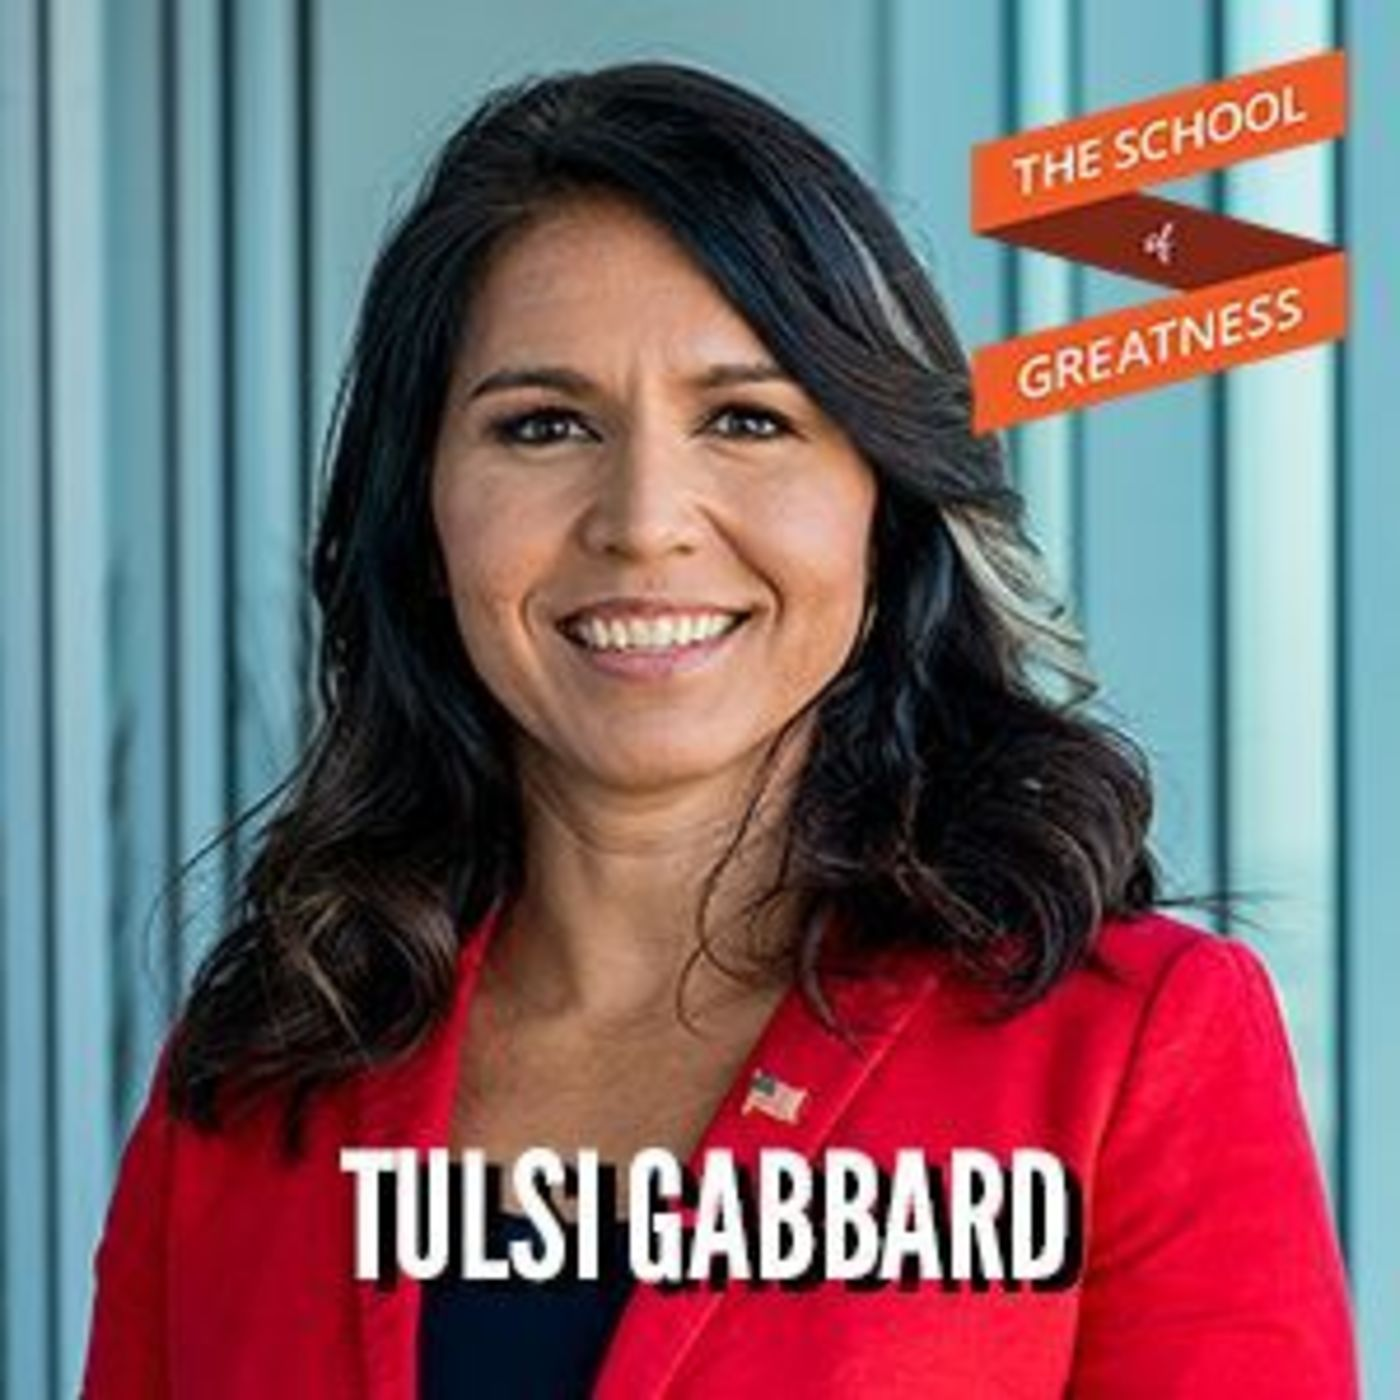 Tulsi Gabbard on Running for President and Service Based Leadership